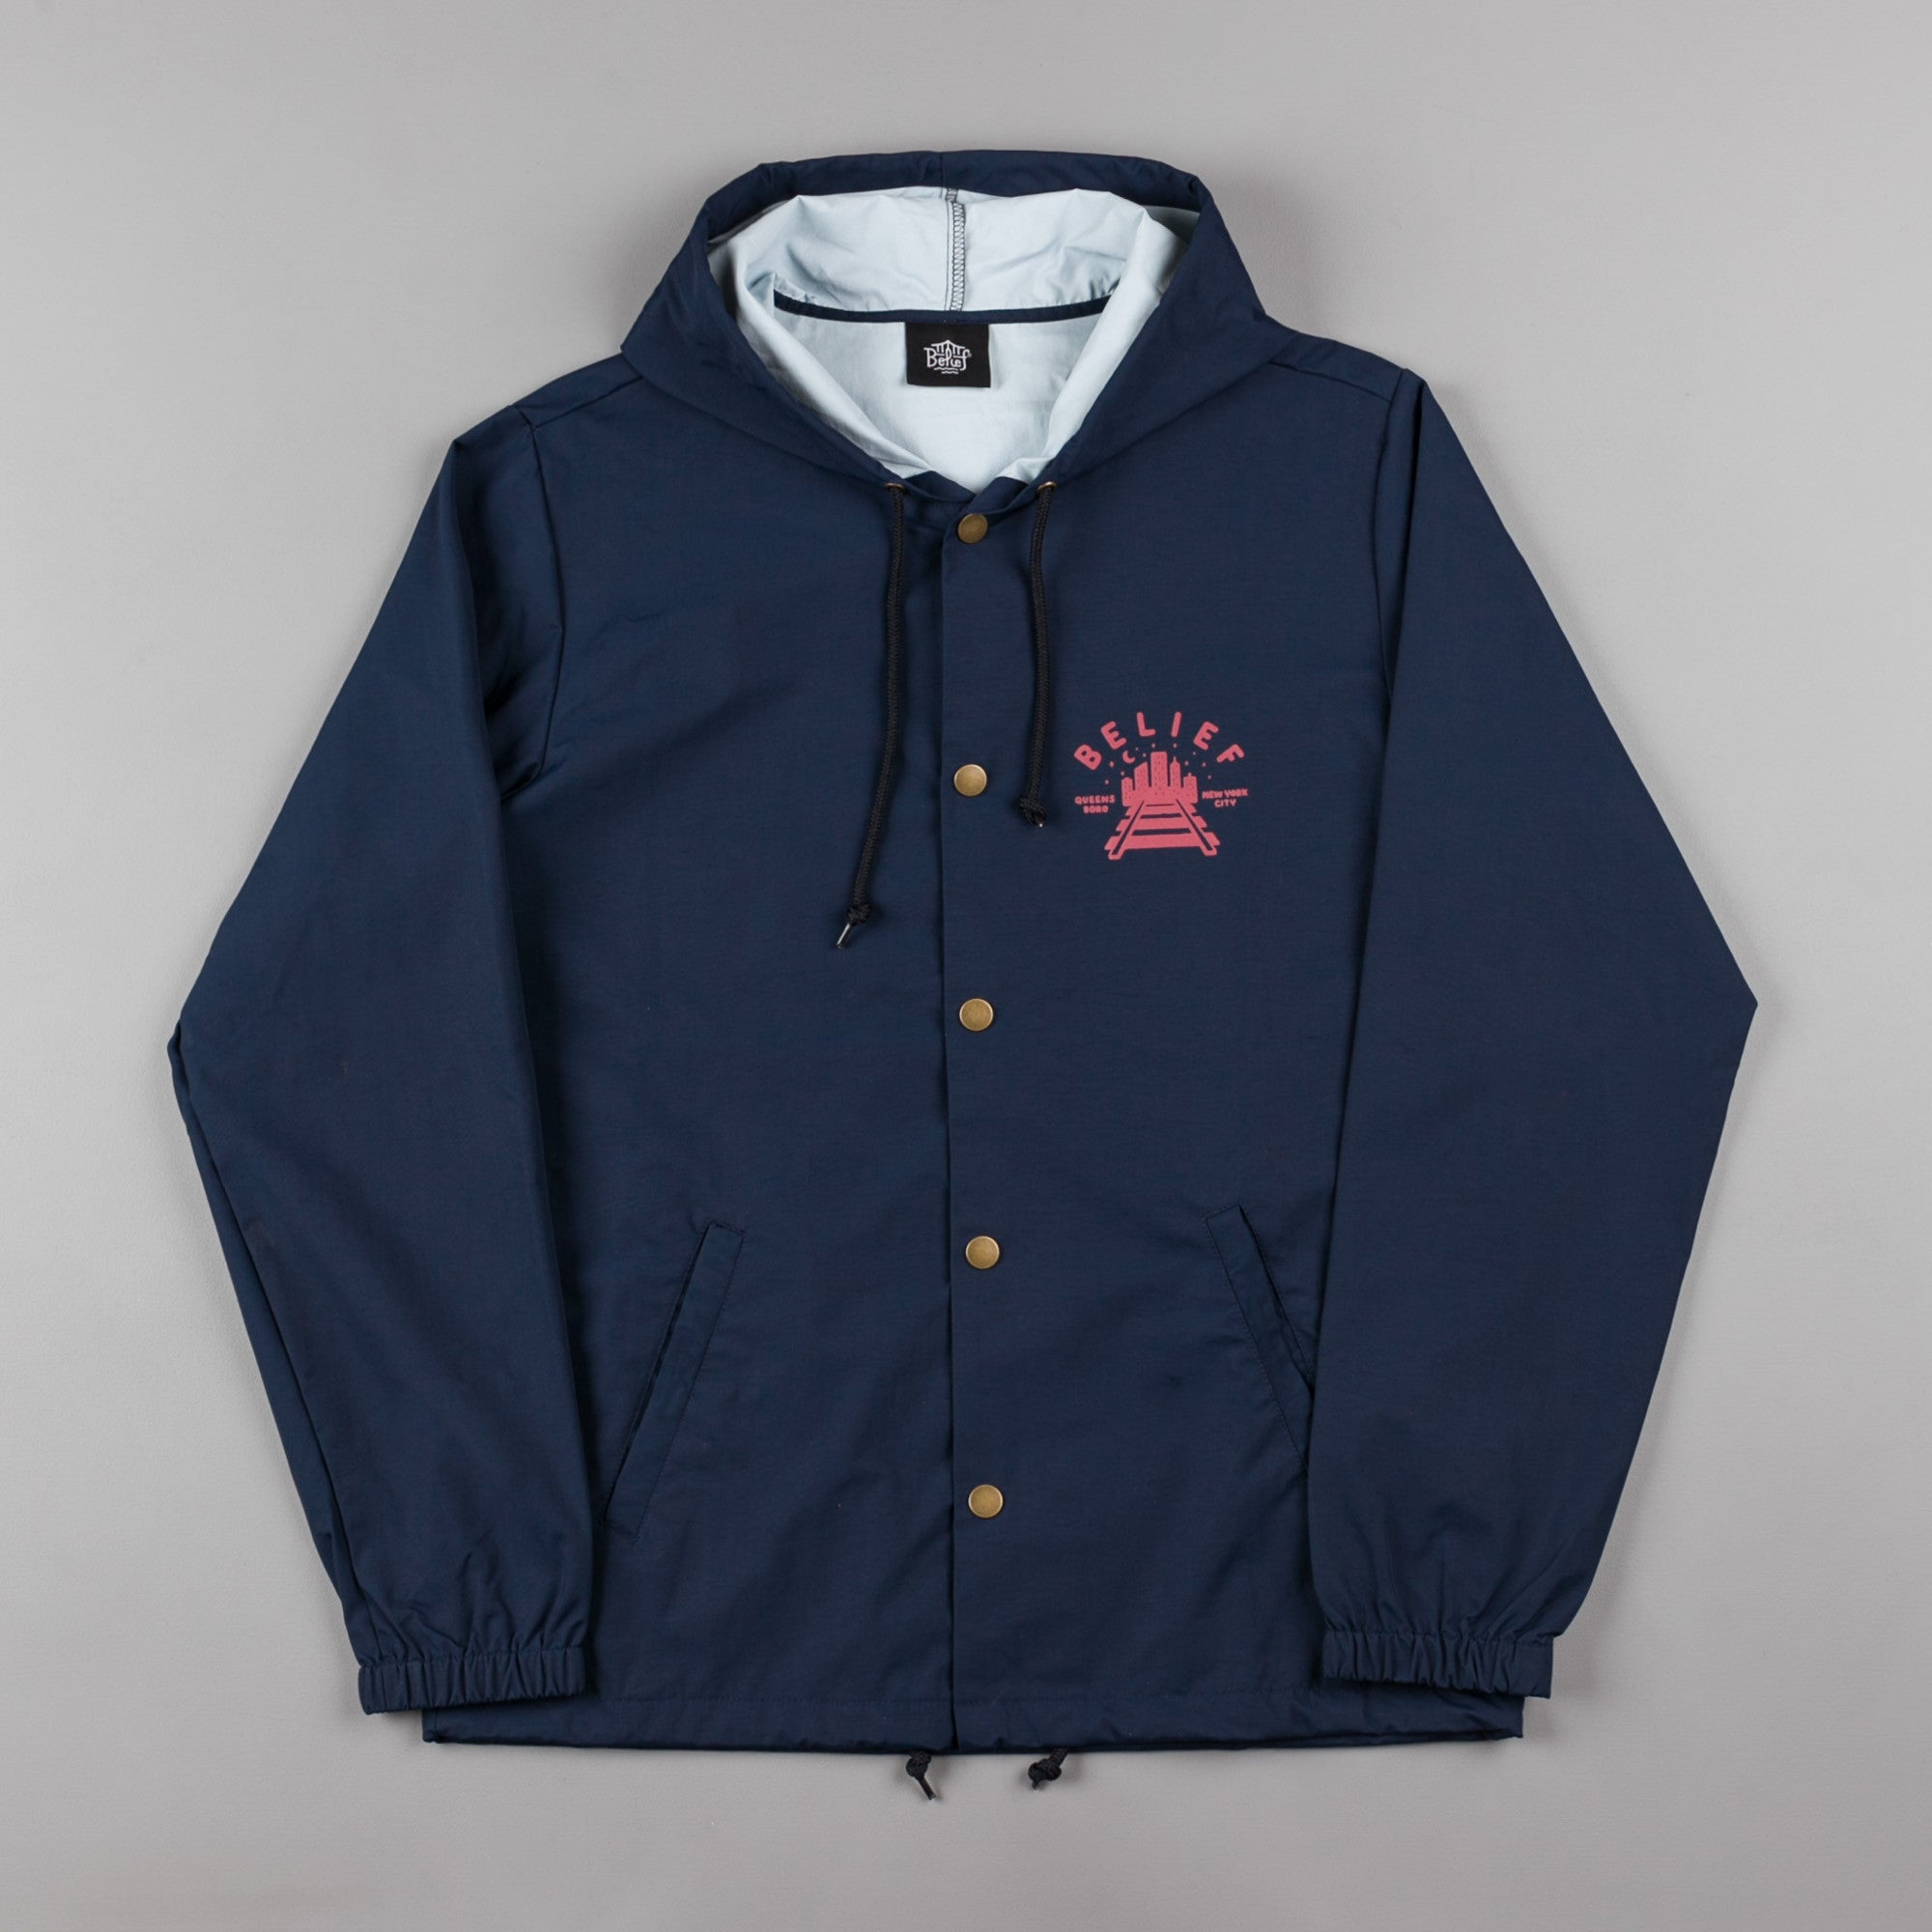 Belief Queensboro Jacket - Navy